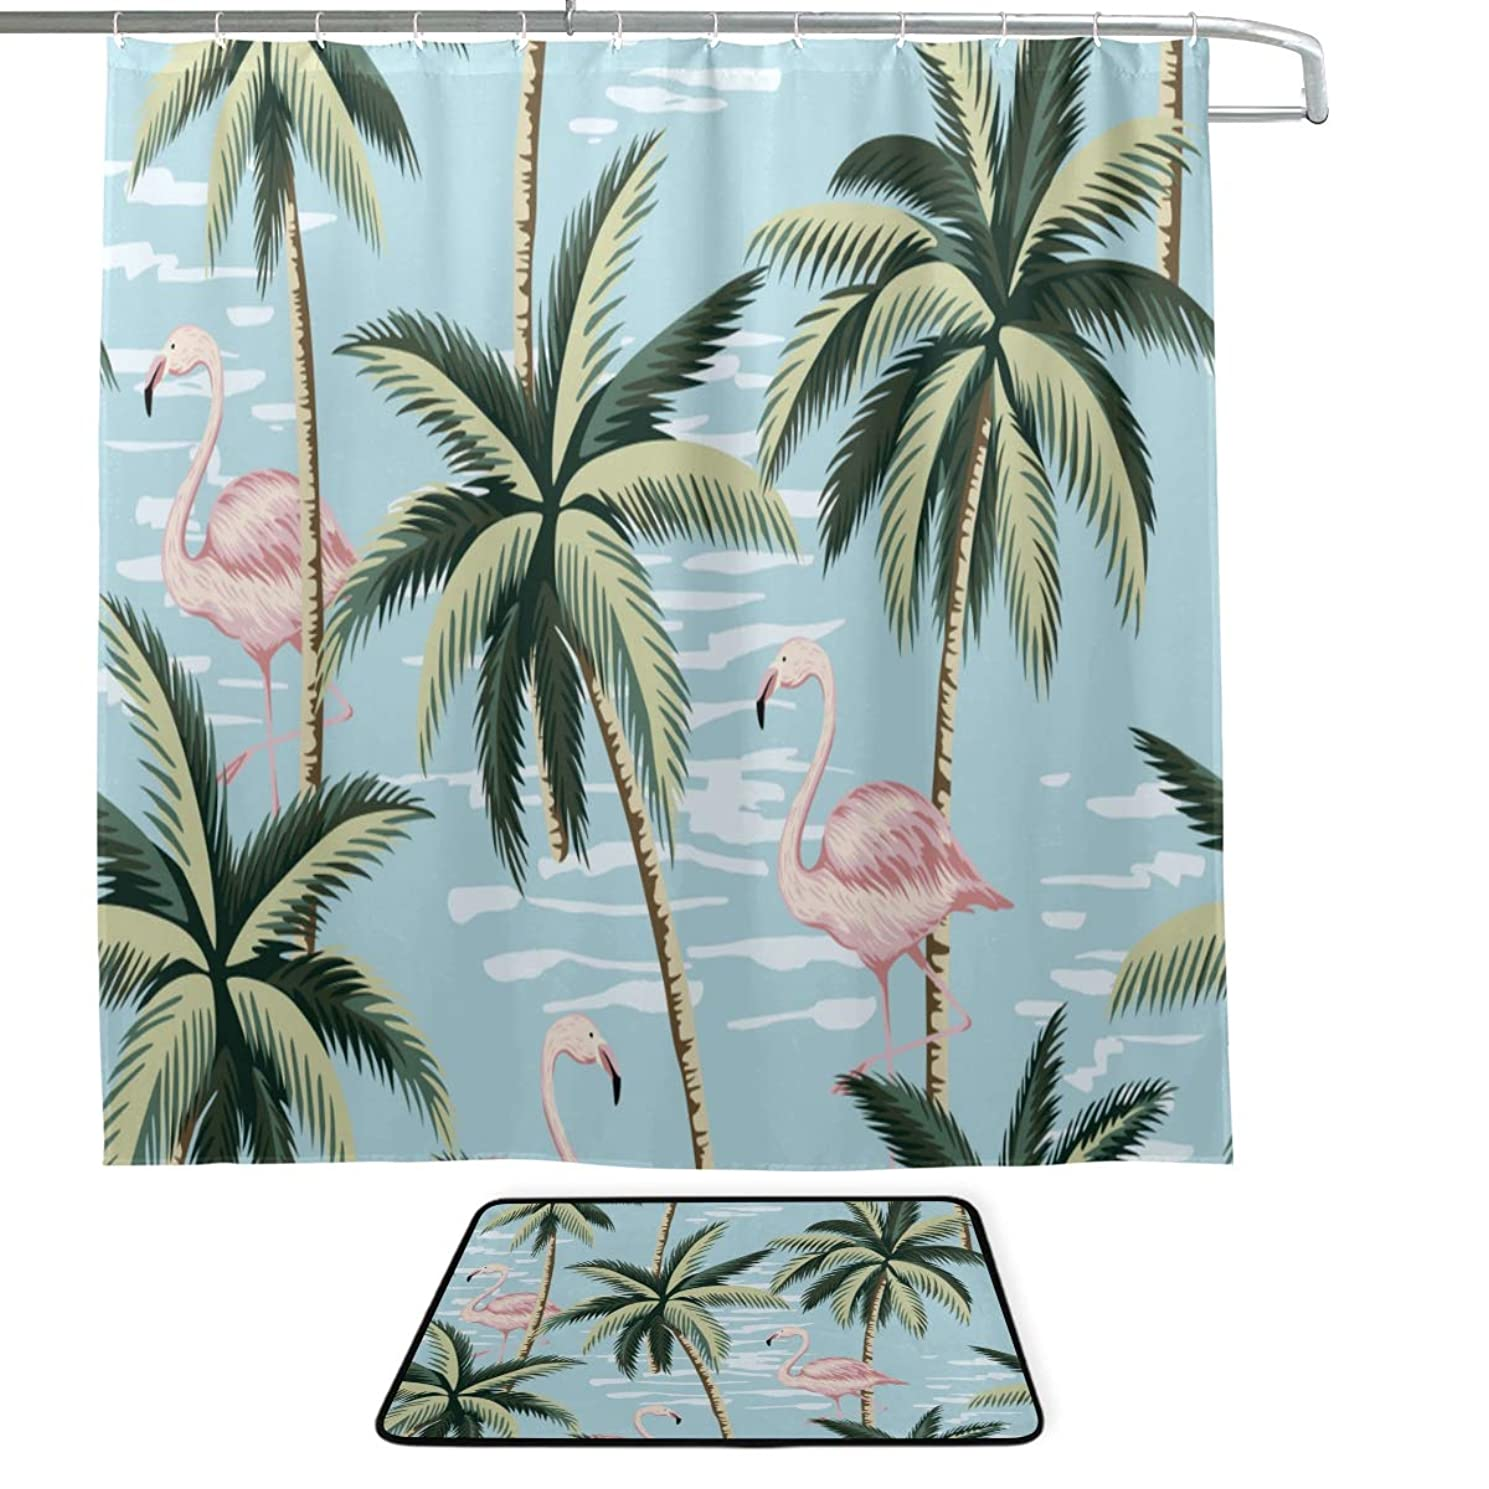 ZLU Tropical Vintage Pink Flamingo Palm Trees Single-Sided Printing Shower Curtain and Non-Slip Bath Mat Rug Floor Mat Combination Set with 12 Hooks for Bathroom Decor and Daily Use